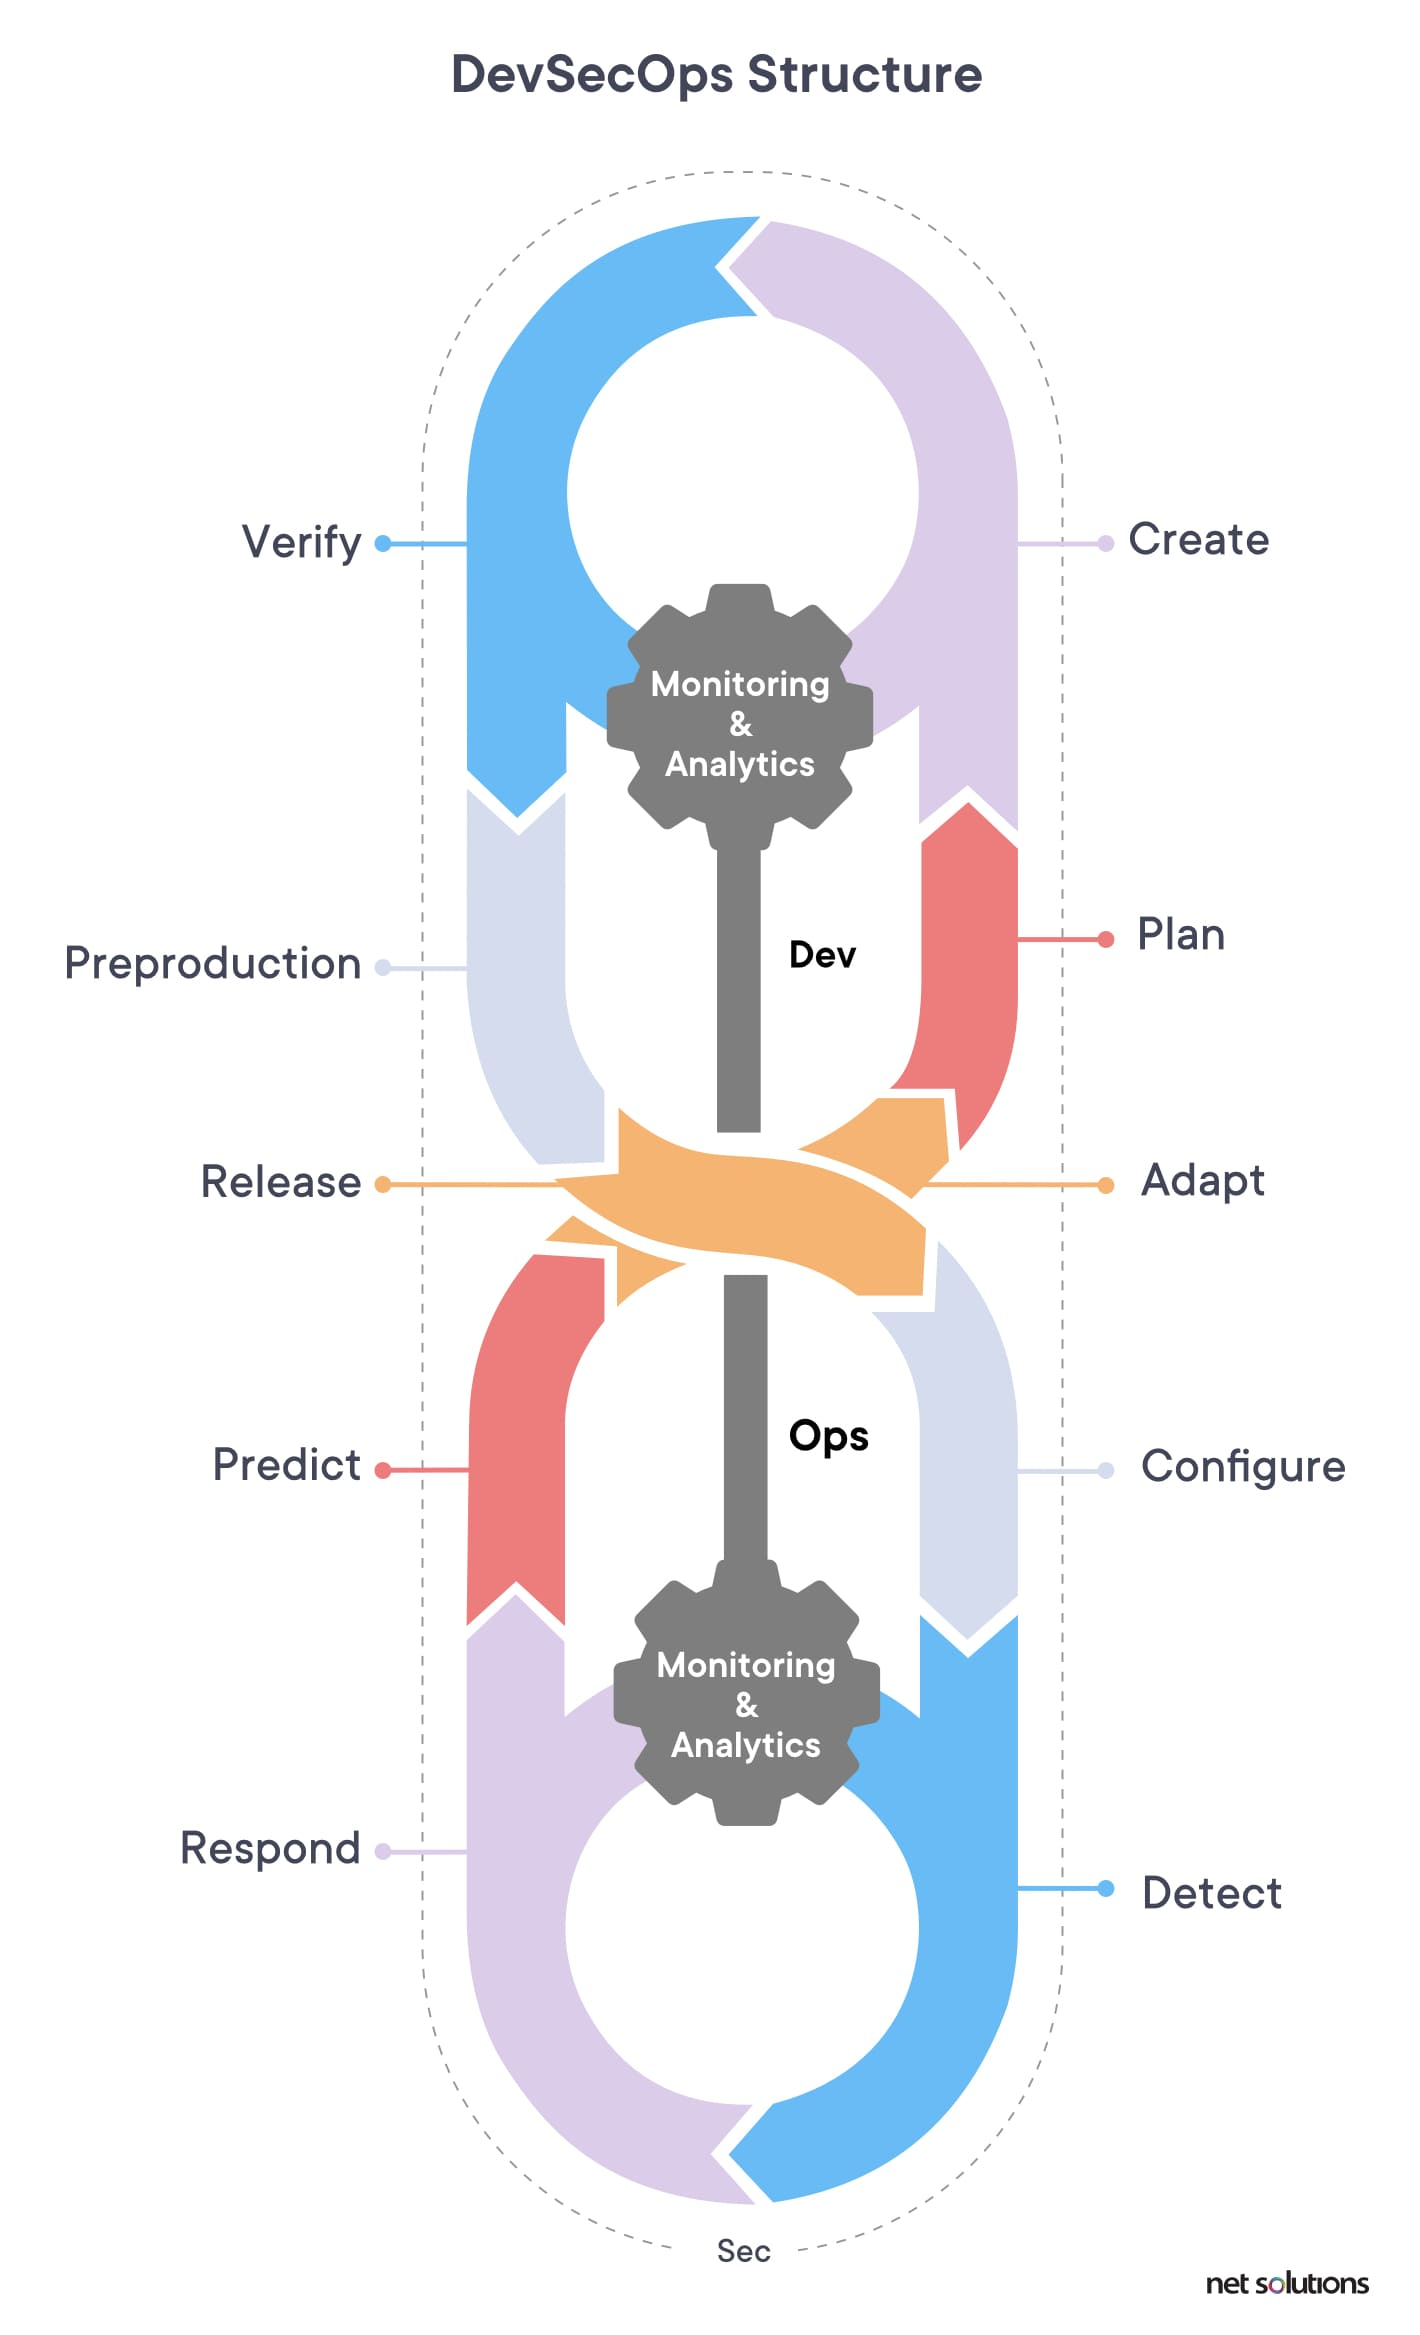 The devsecops structure and approach